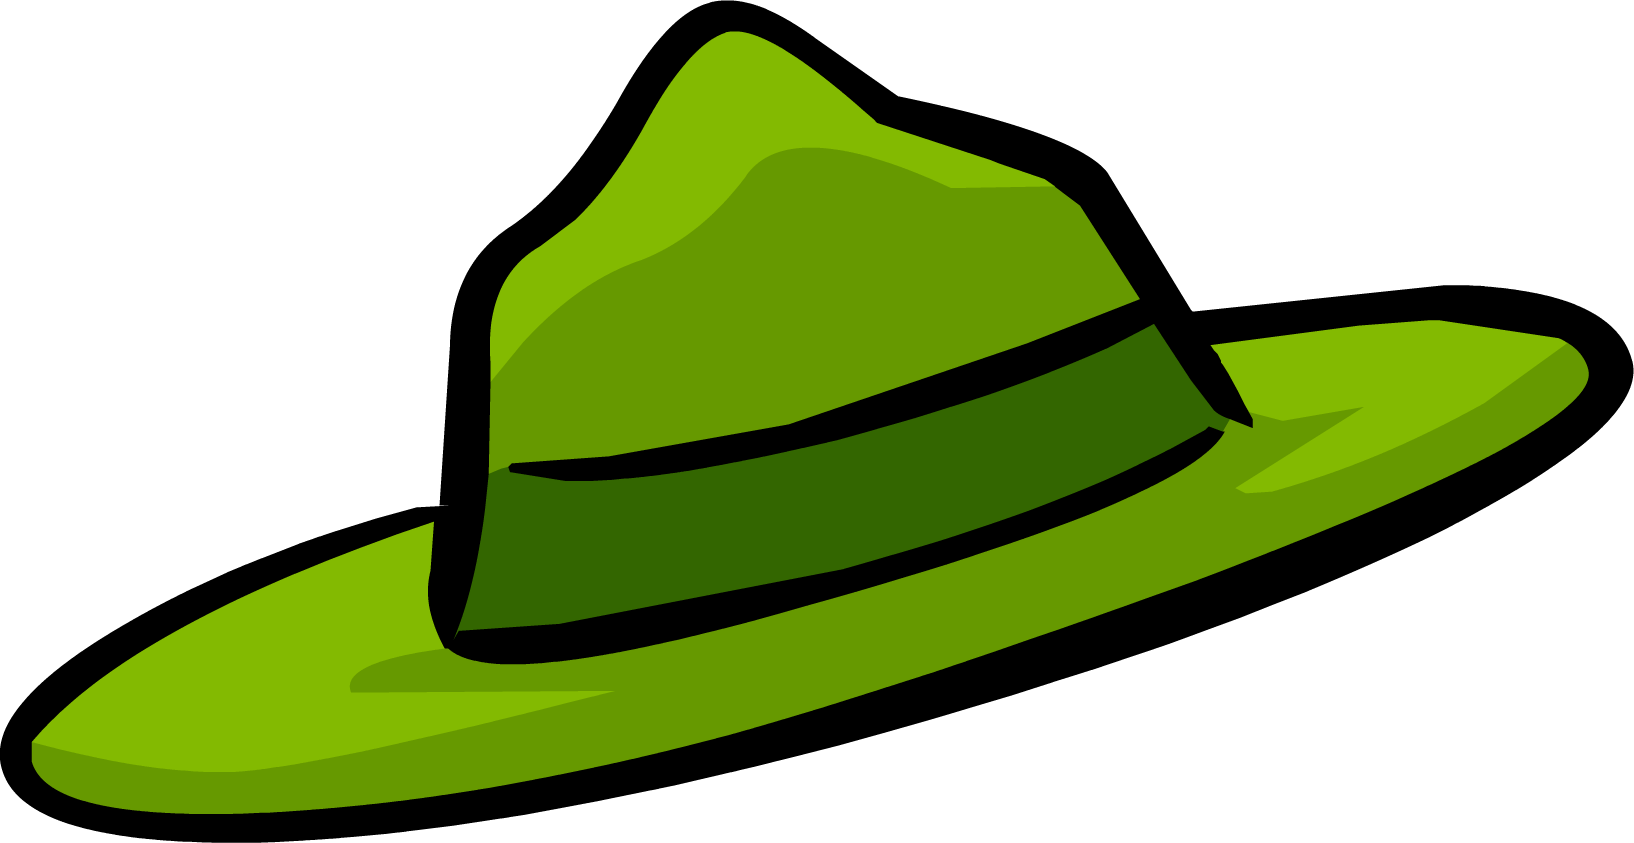 Ranger google search capstone. Clipart hat camping